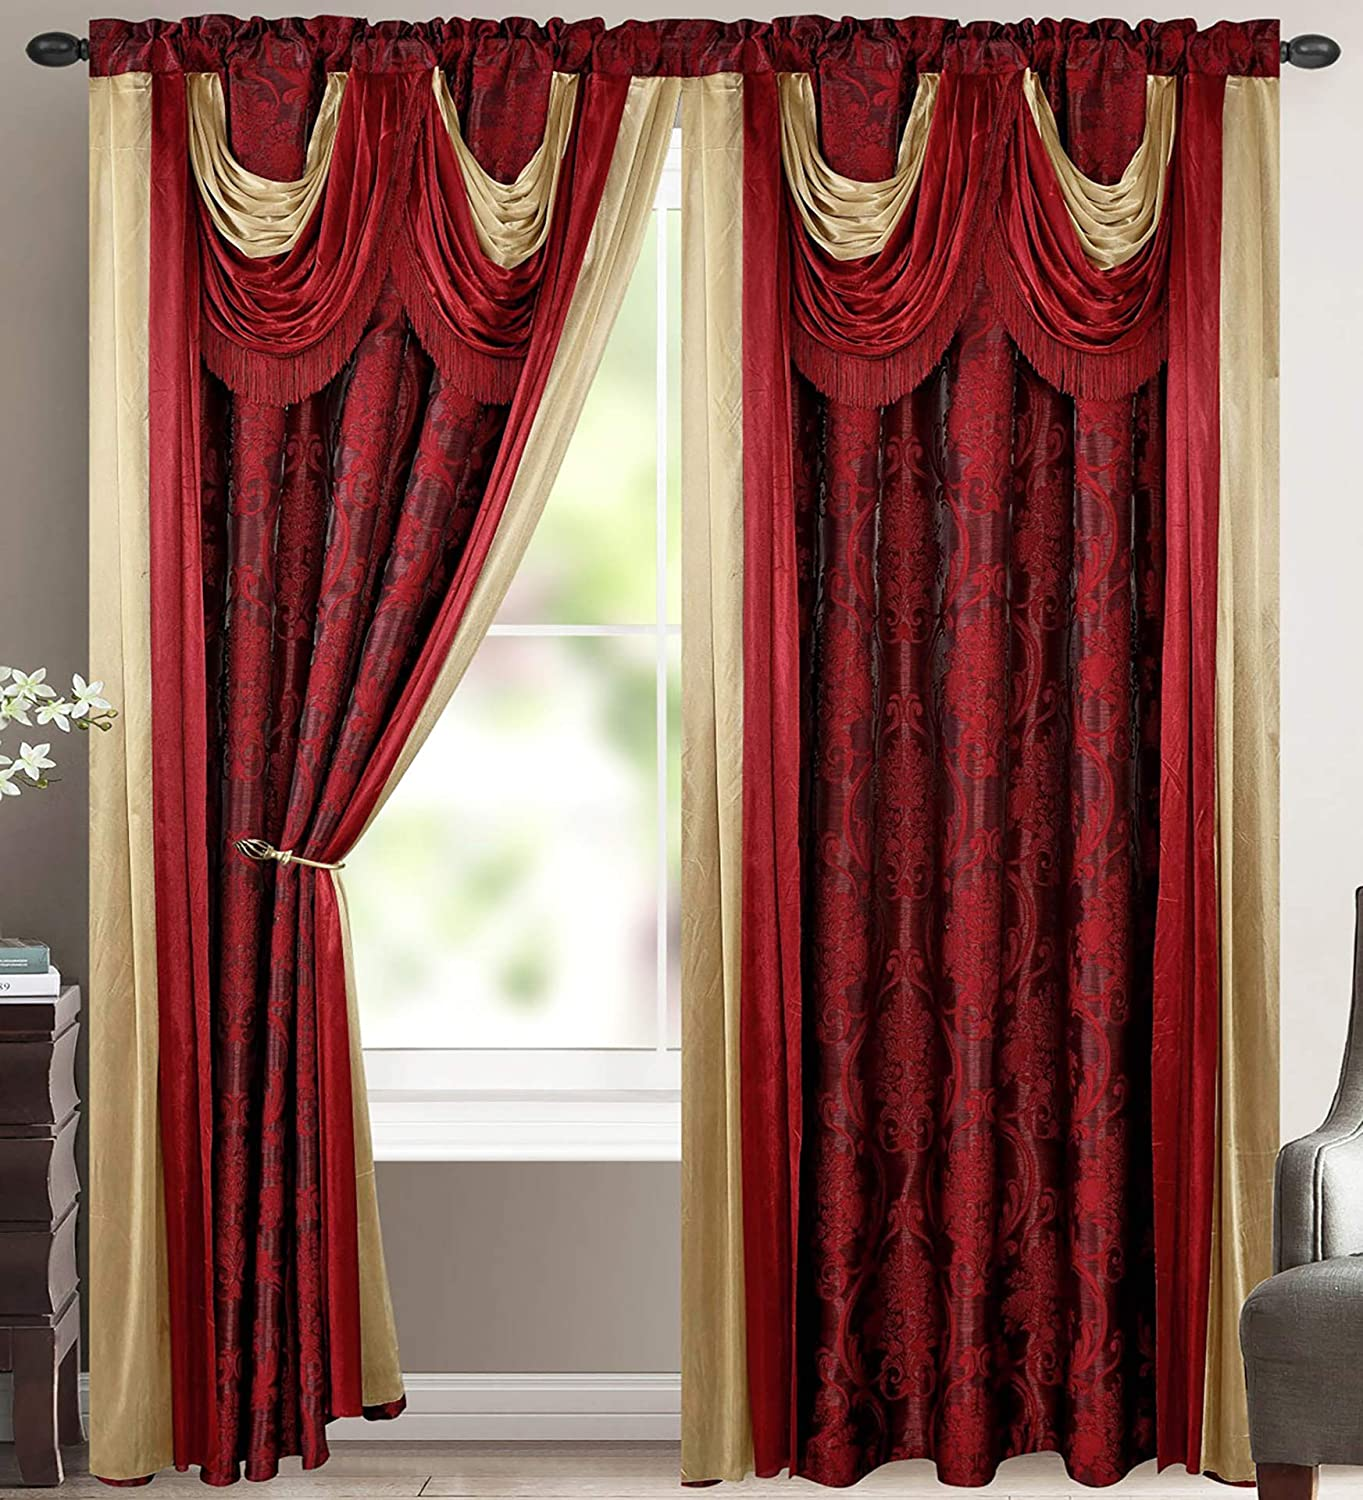 Bella Luxury Jacquard Curtain Panel with Attached Waterfall Valance & Scarf 54 by 84-Inch Burgundy